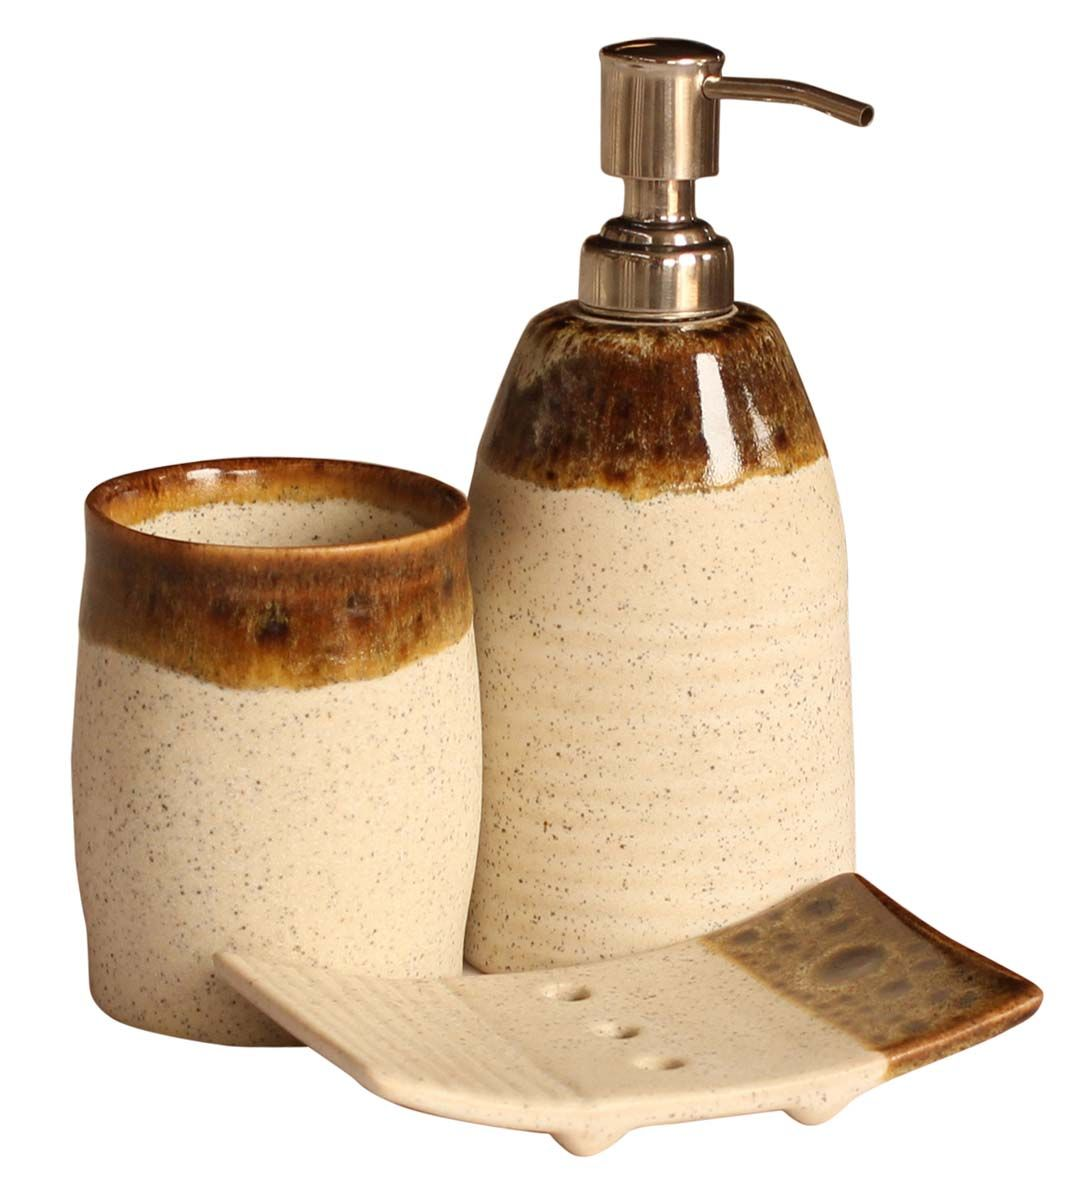 bulk wholesale handmade ceramic bathaccessories set 3 items